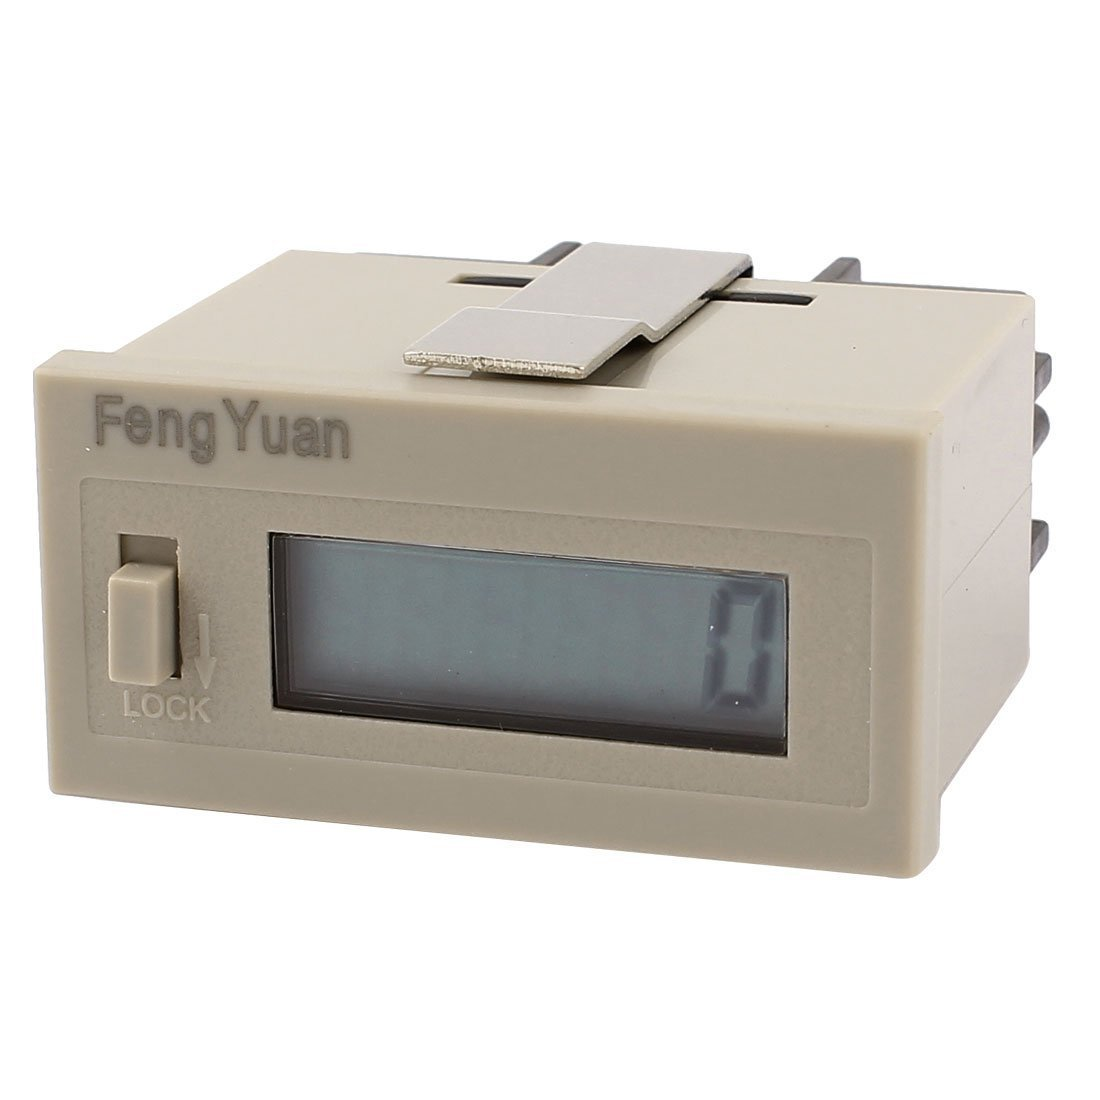 Uxcell A12082000ux0647 H7ec Blm 0 999999 Counting Range No Voltage Wiring Diagram Required Digital Counter Industrial Scientific